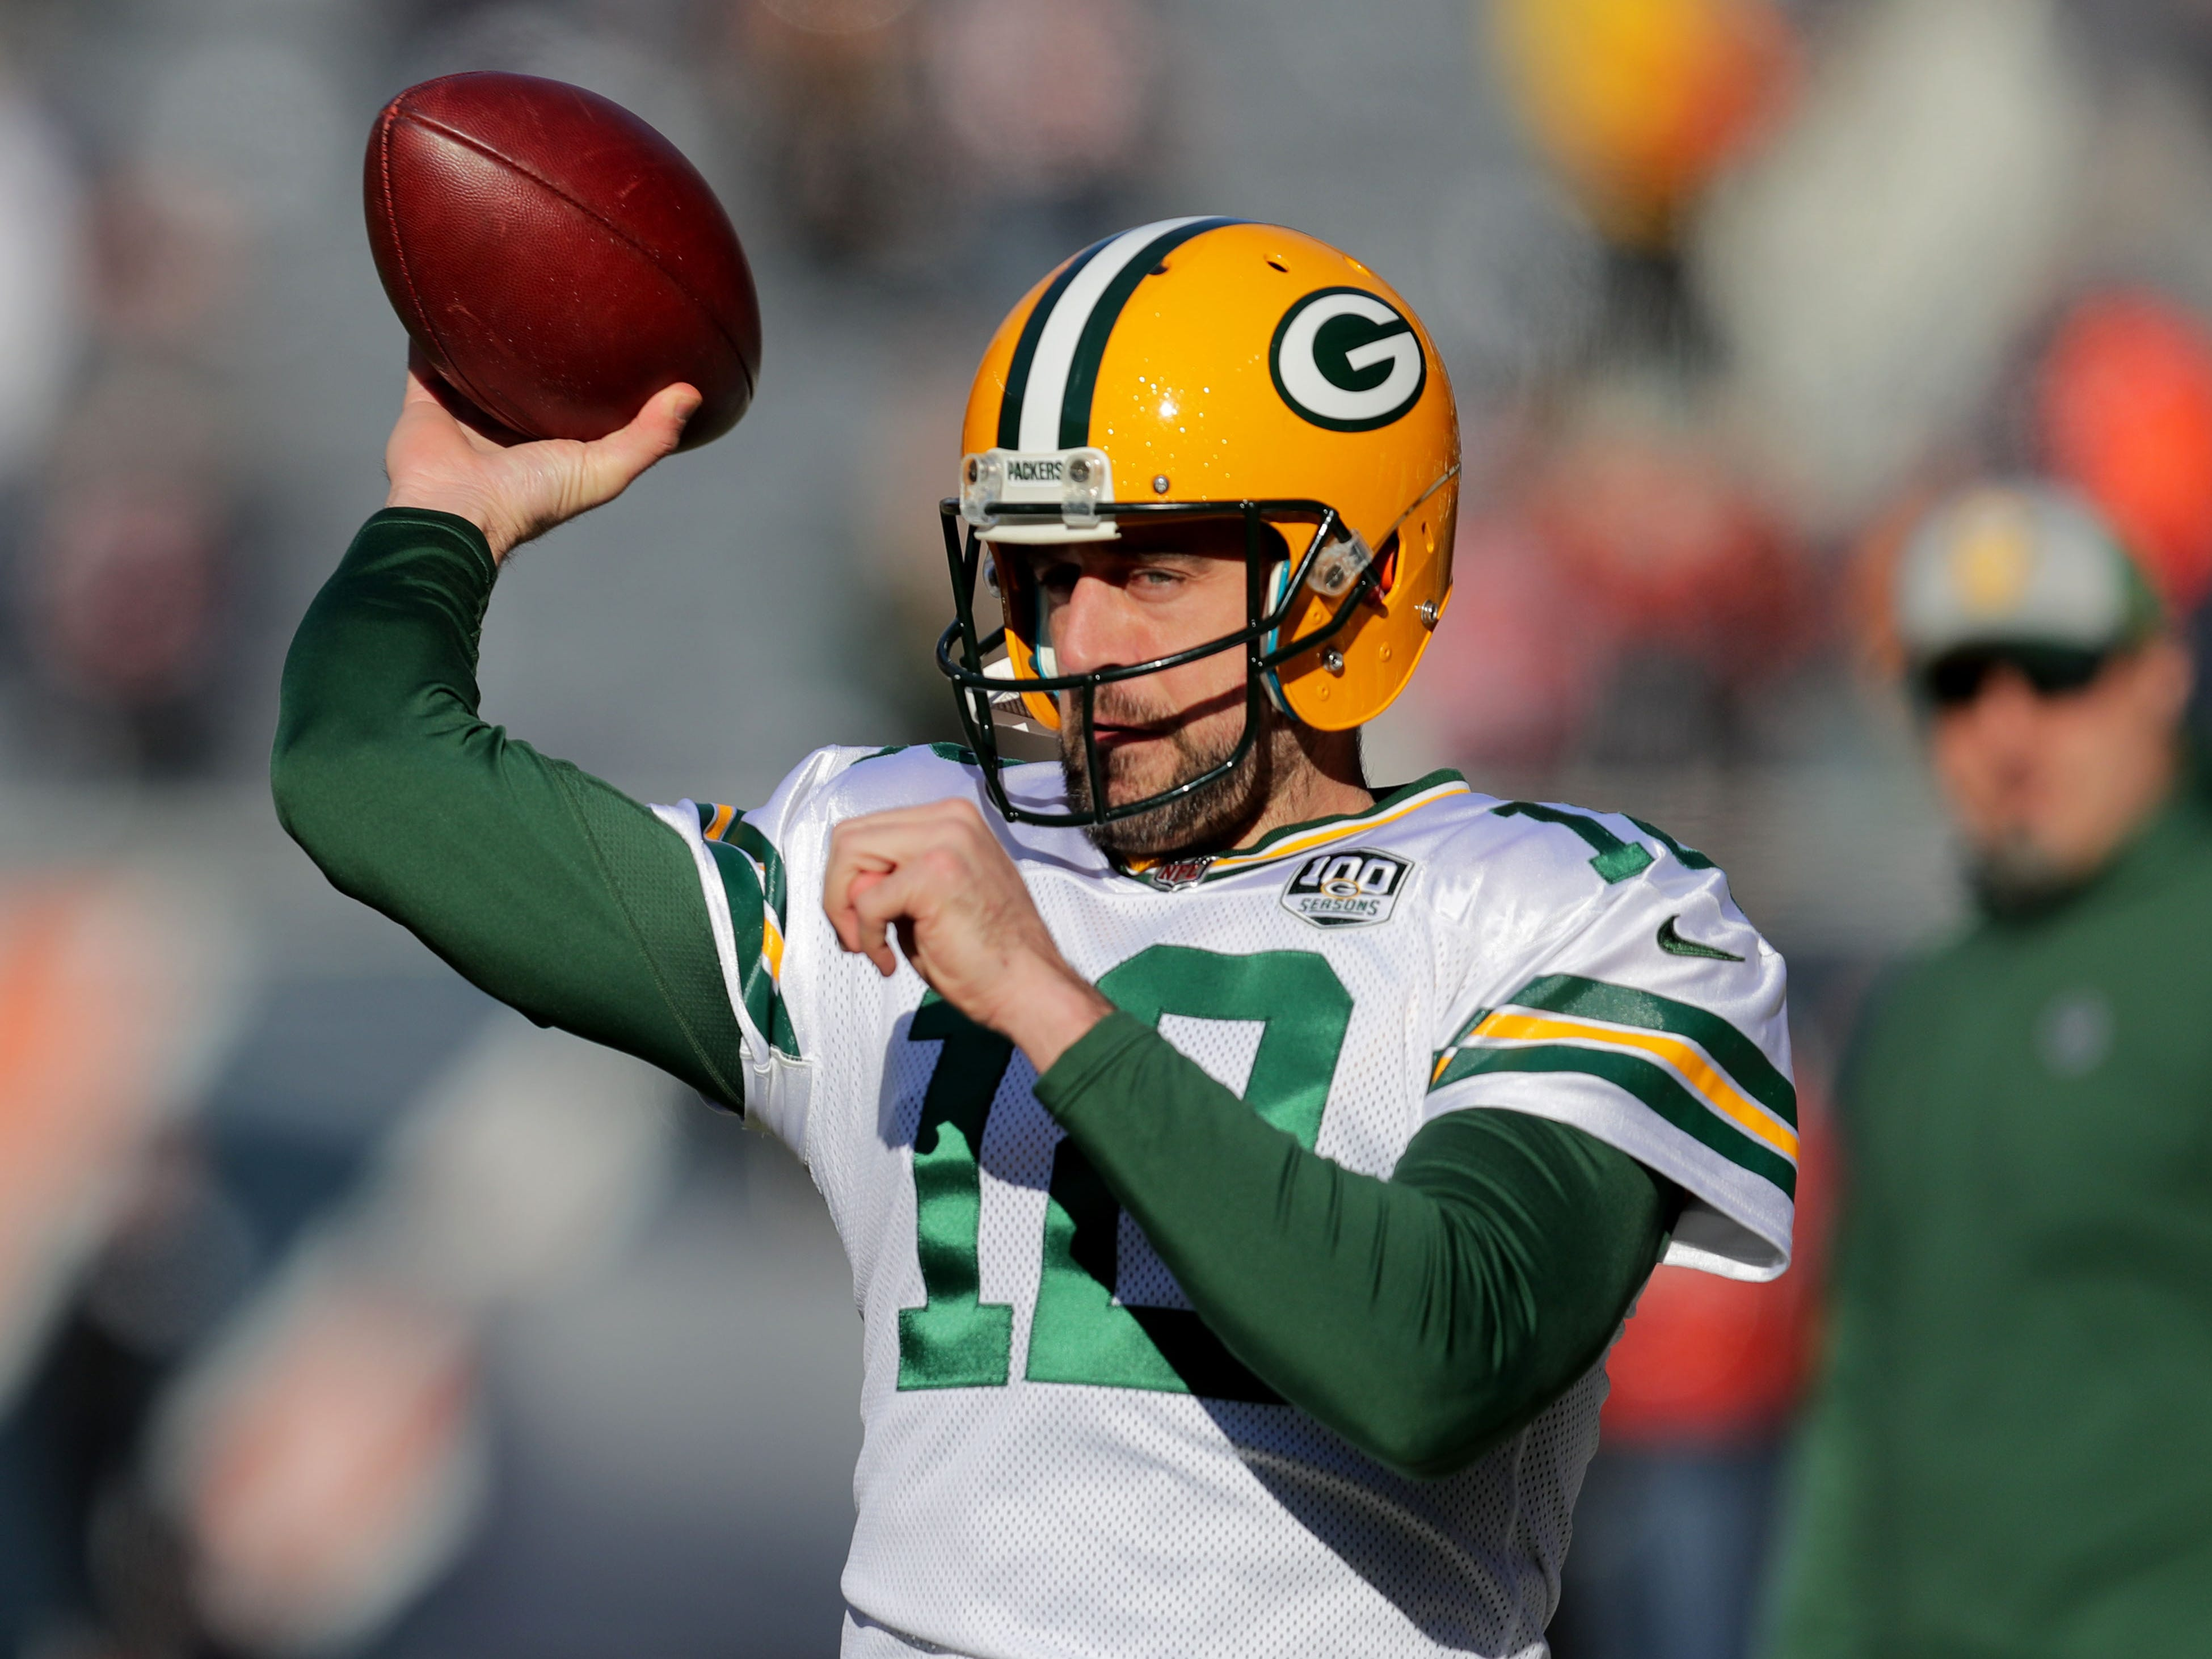 Green Bay Packers' Aaron Rodgers warms up before the Green Bay Packers game against the Chicago Bears at Soldier Field Sunday, Dec. 16, 2018, in Chicago.